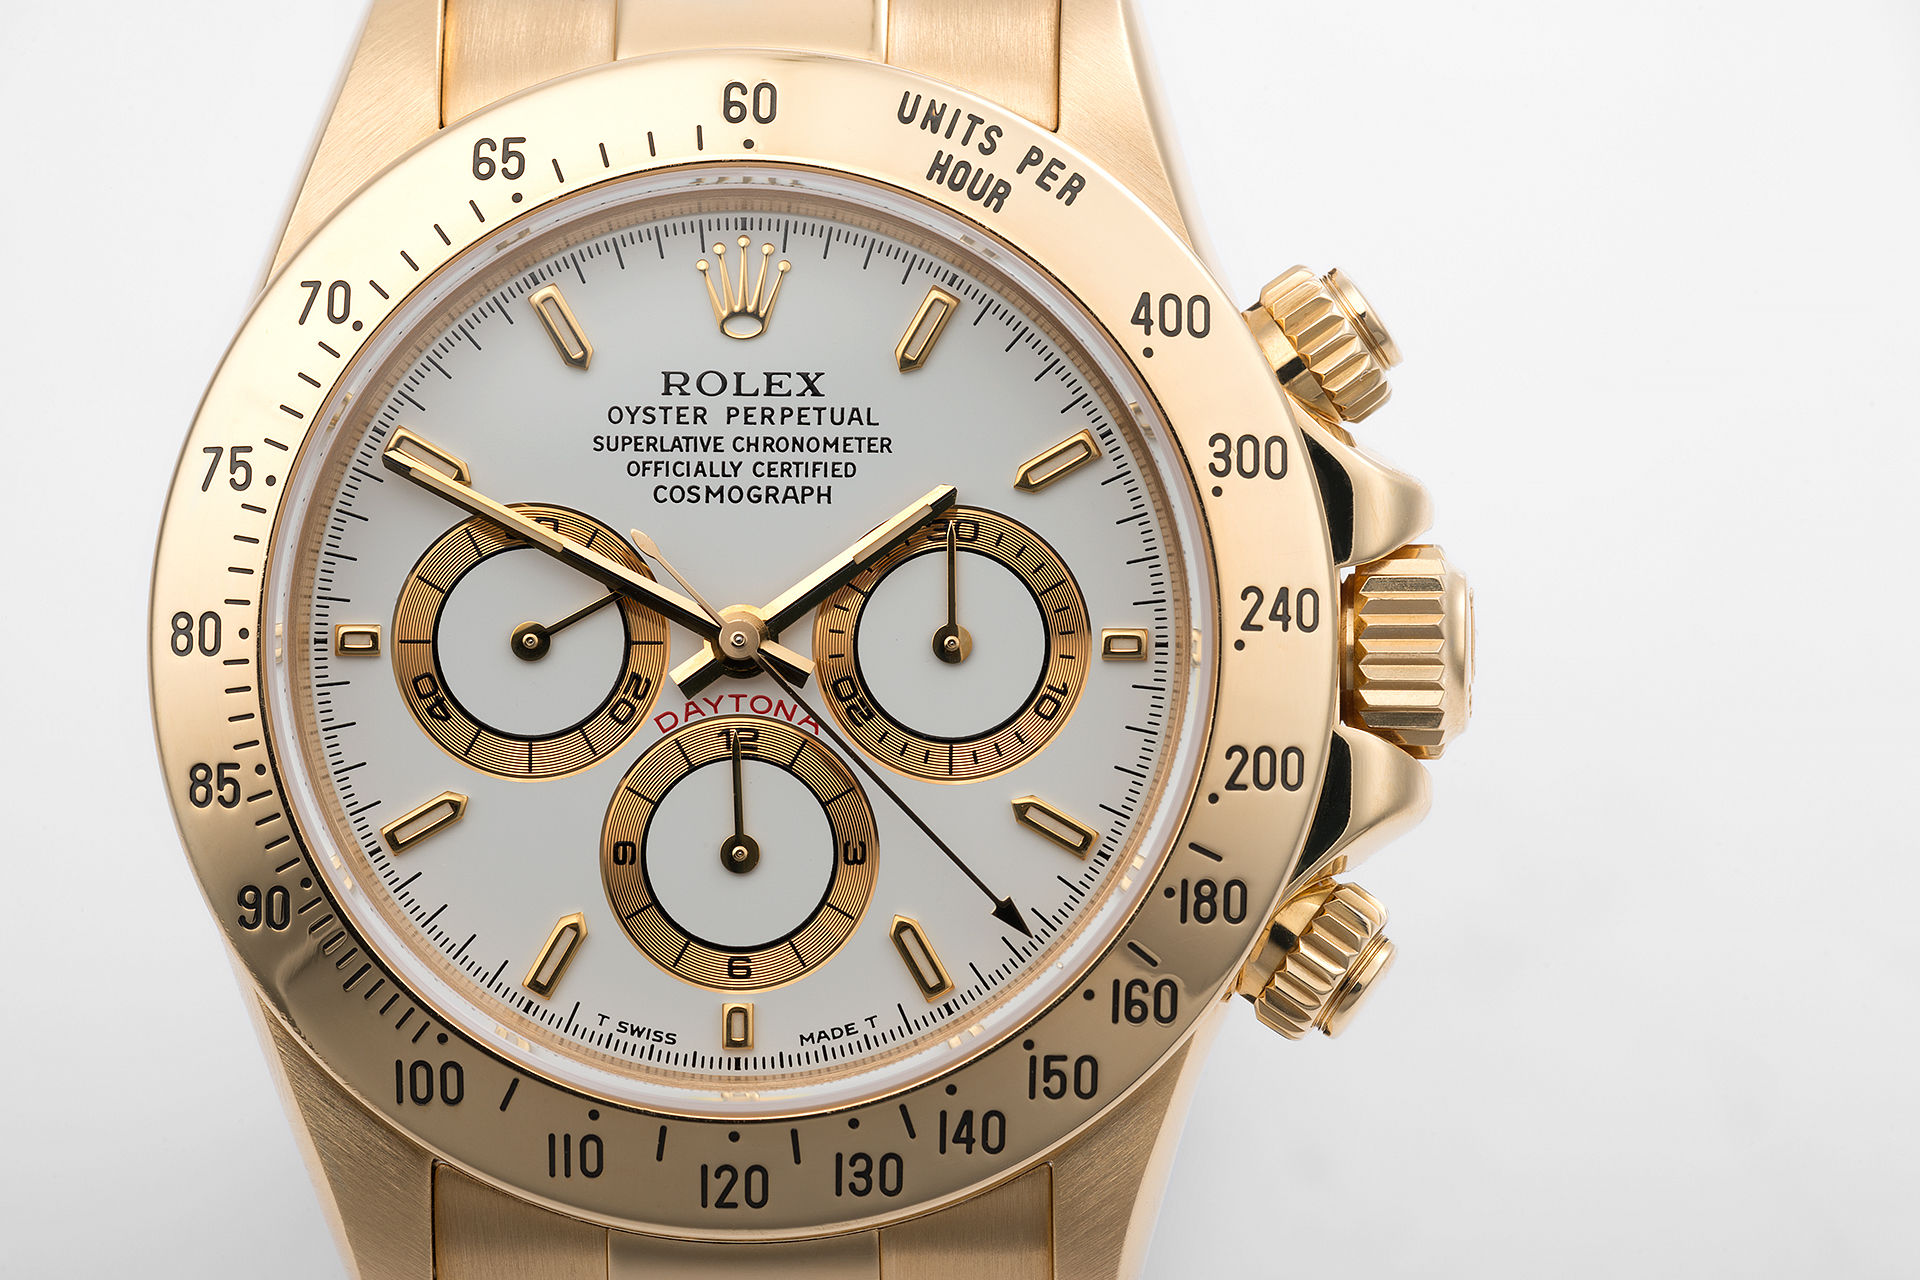 new product 3a81b c5f15 Rolex Cosmograph Daytona Watches | ref 16528 | Solid Gold ...